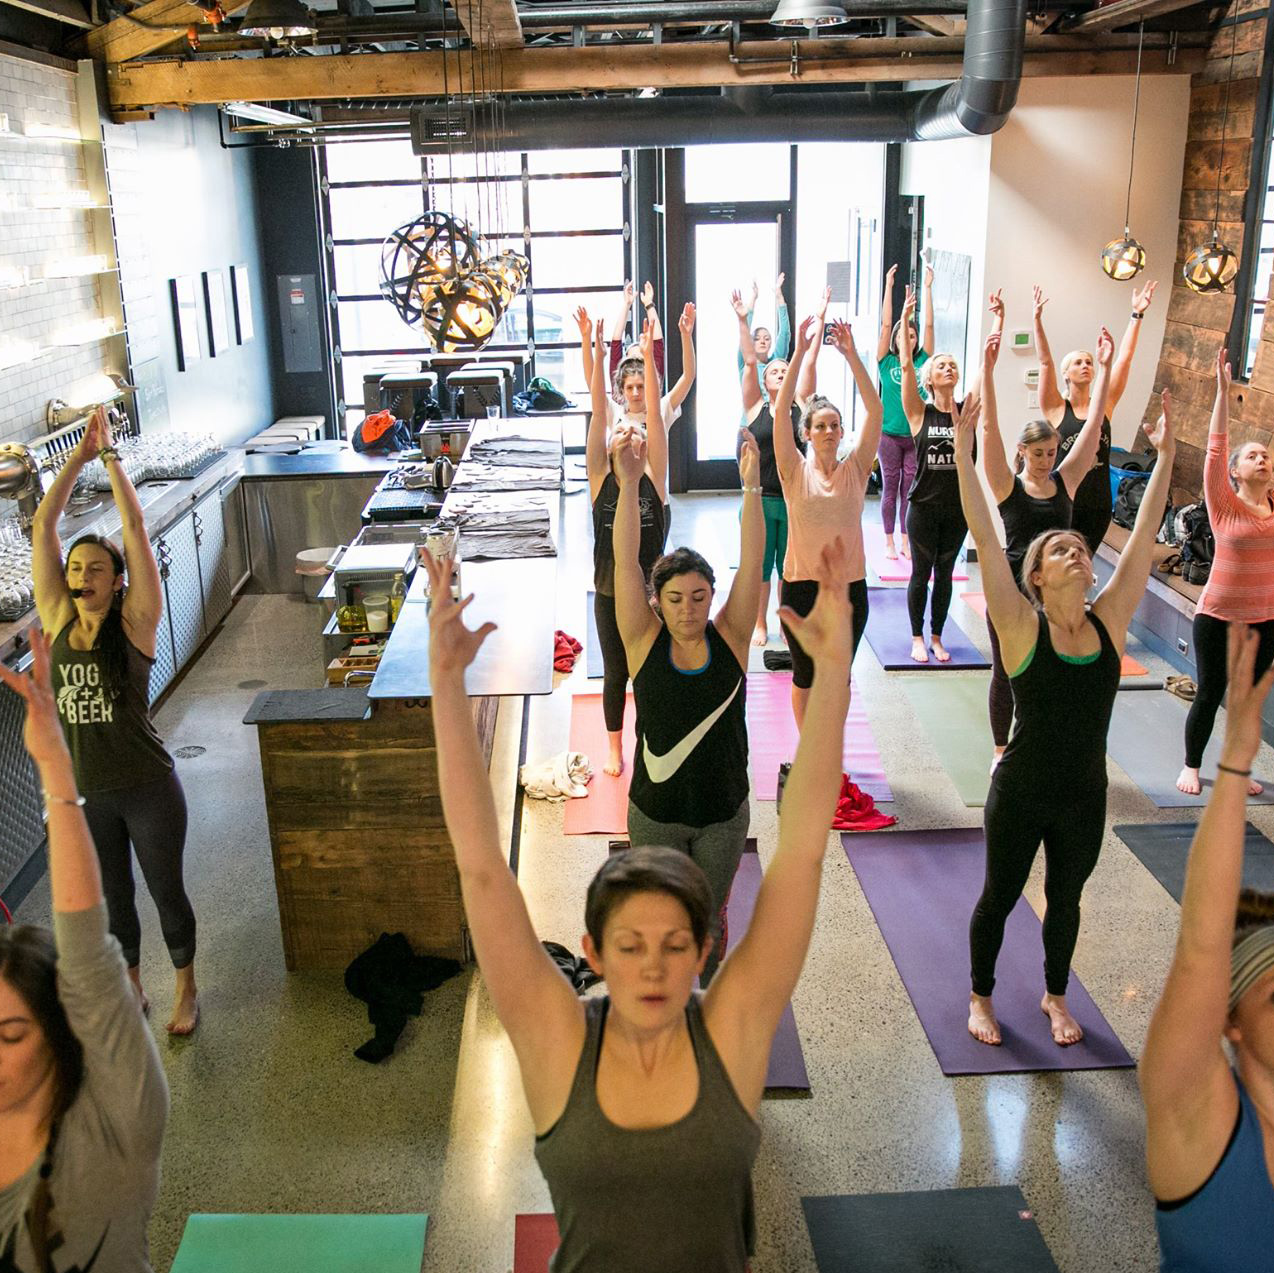 You Can Join Up With The Nationwide Beer Yoga Tour This Summer